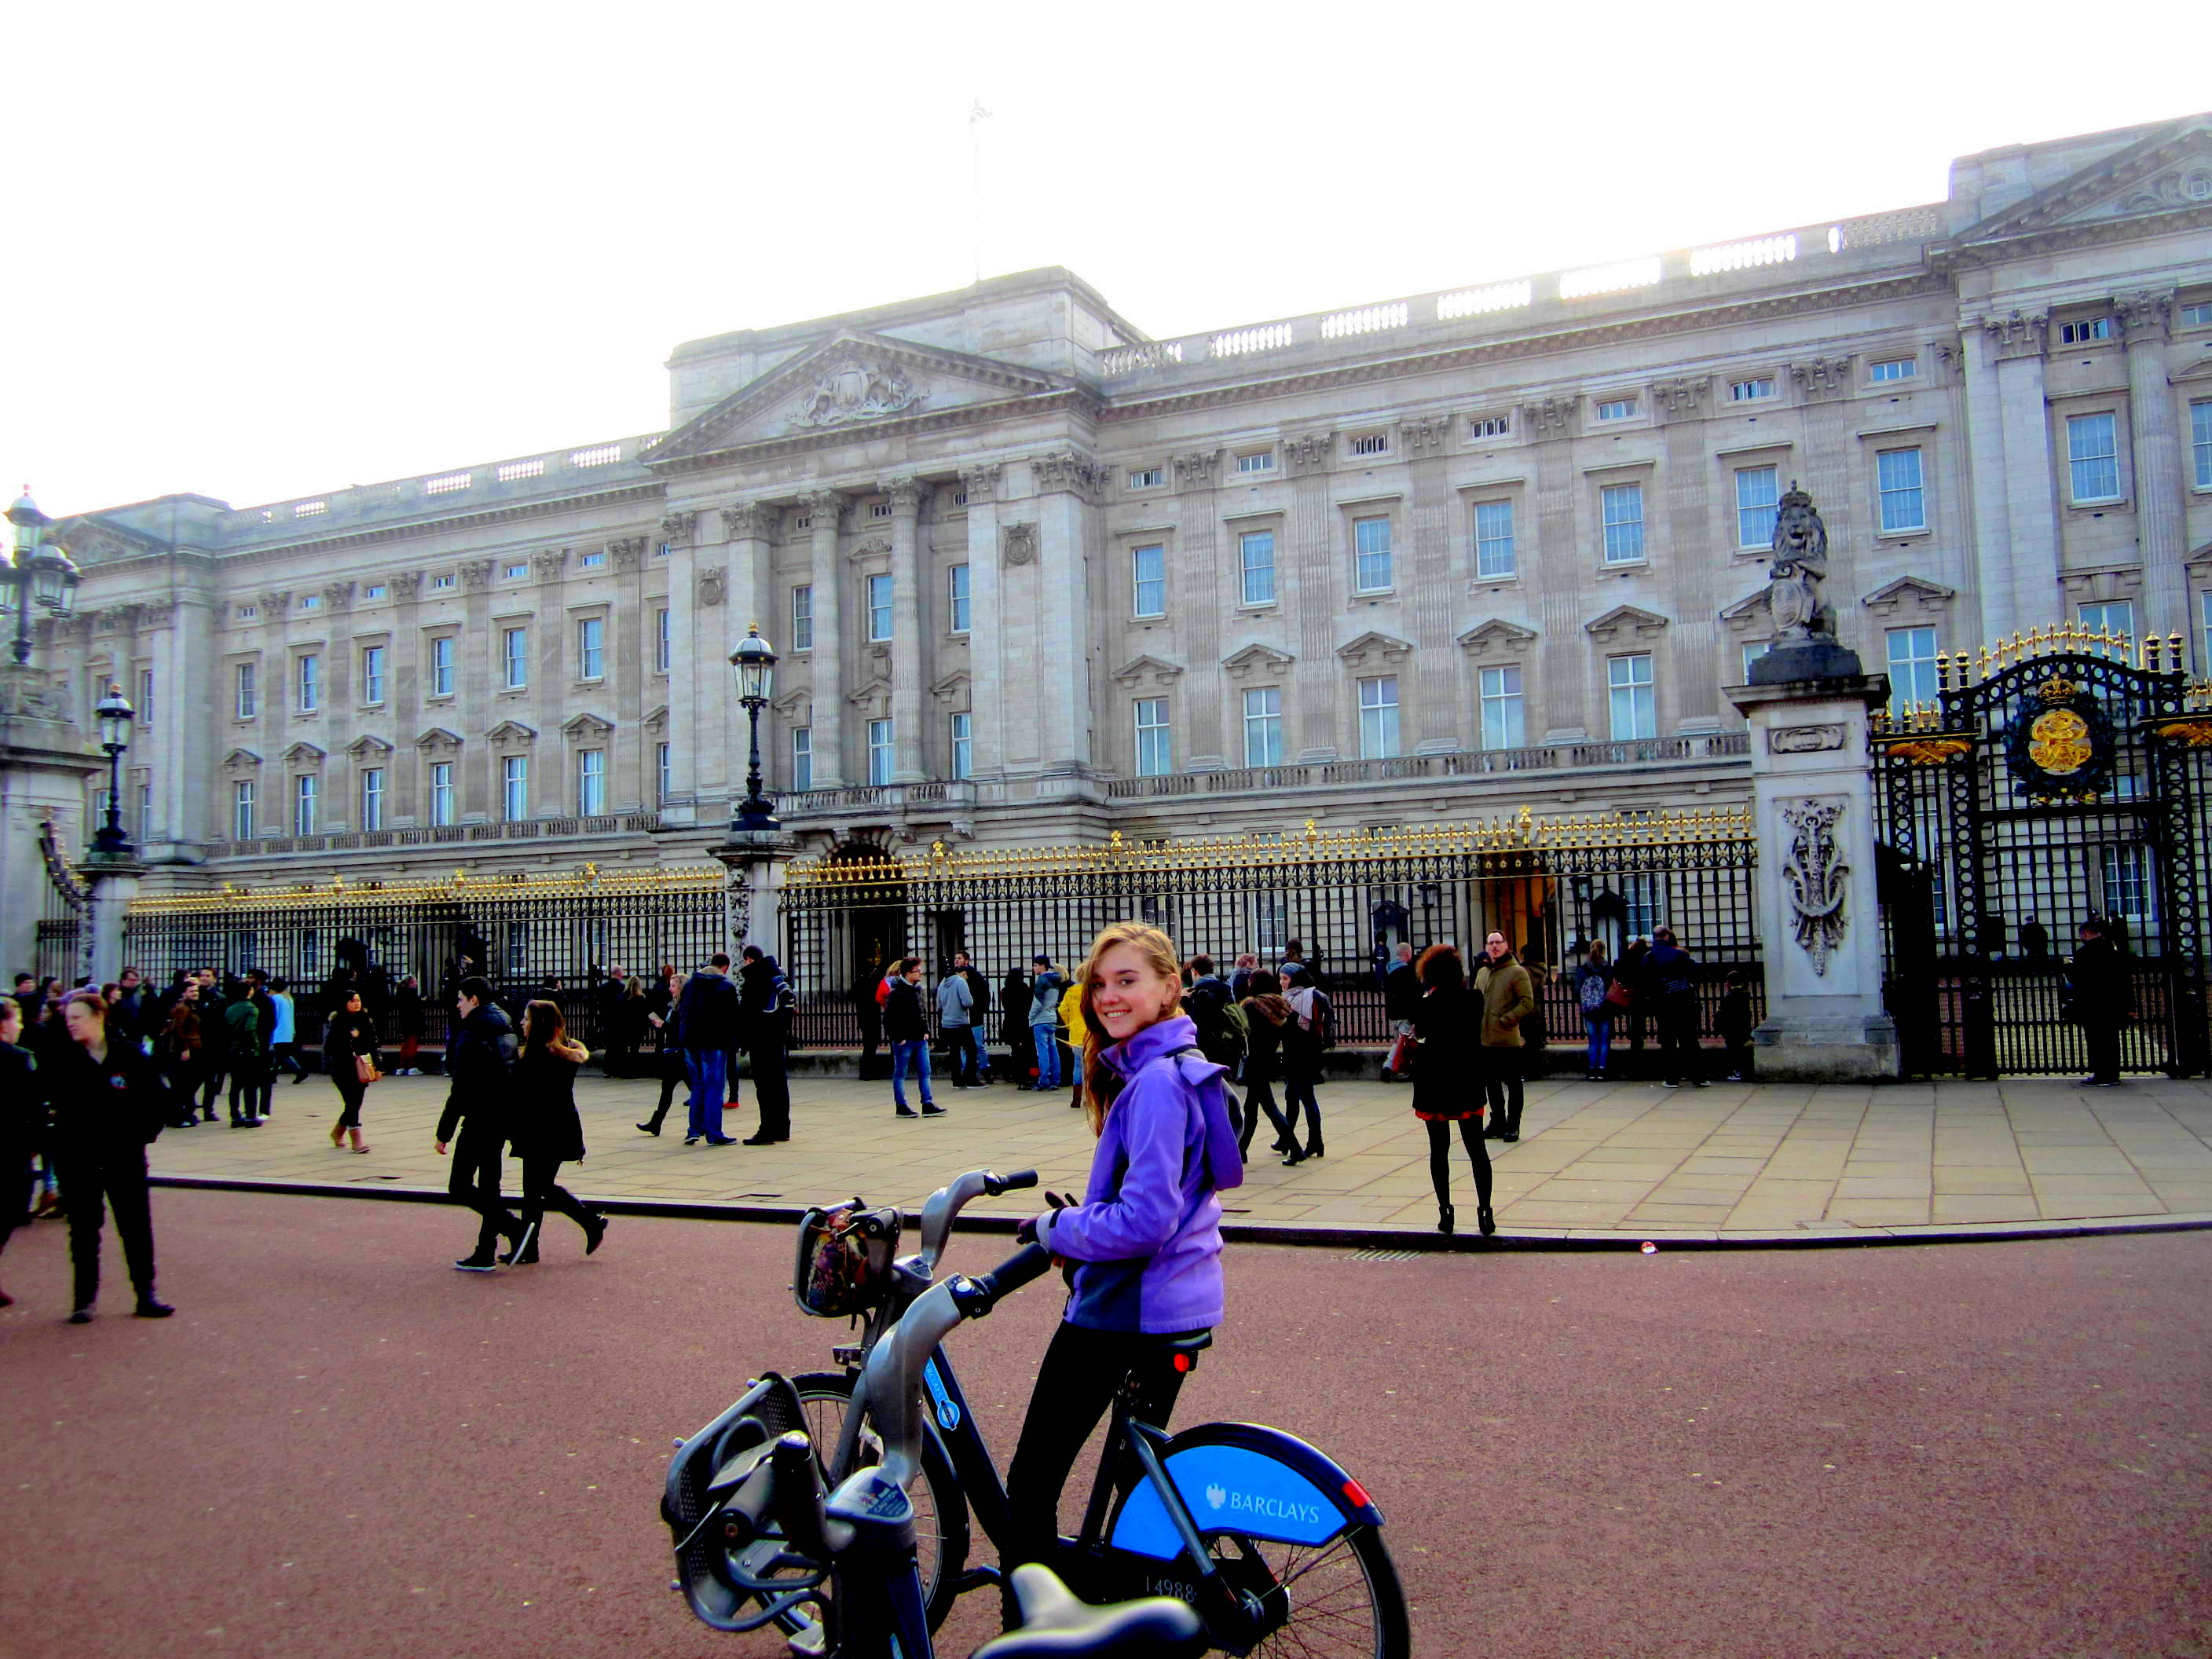 Buckingham Palace. London, England